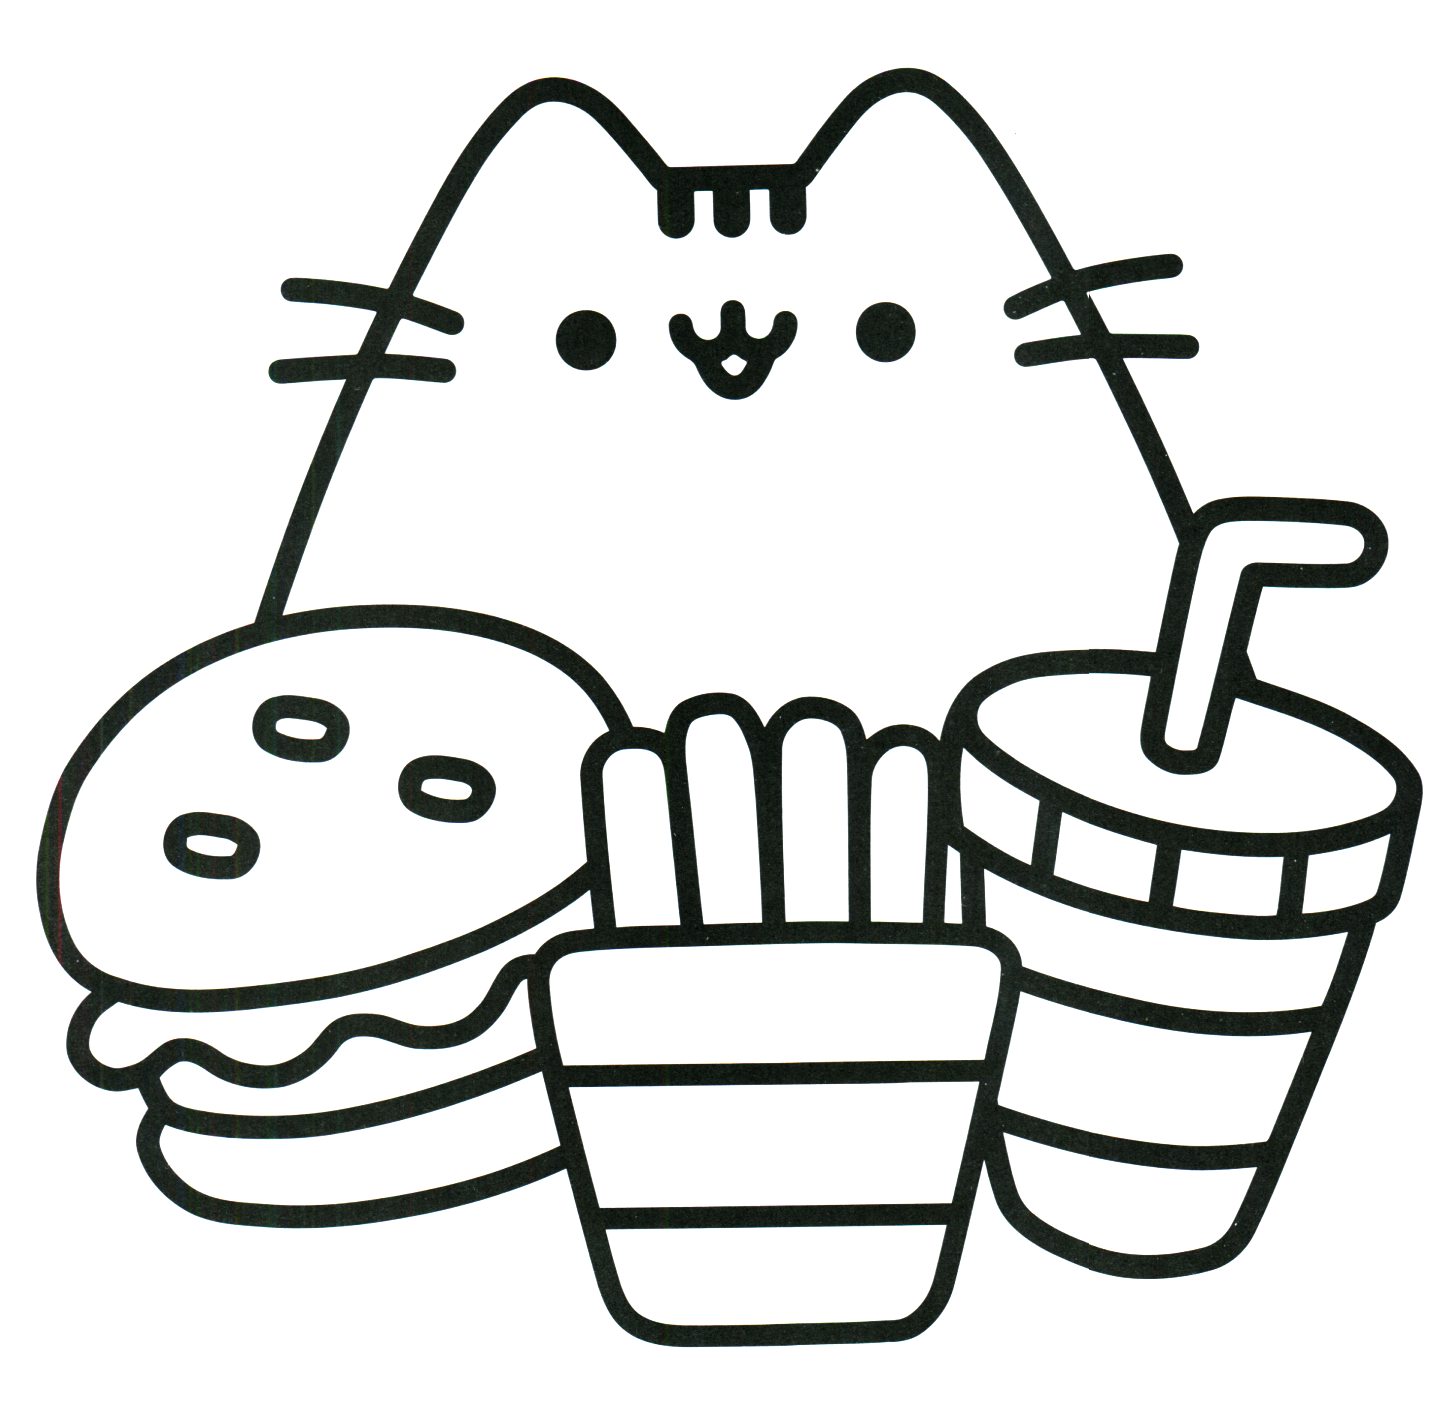 pusheen coloring pages to print Pusheen Coloring Book Pusheen Pusheen the Cat | Pusheen Coloring  pusheen coloring pages to print